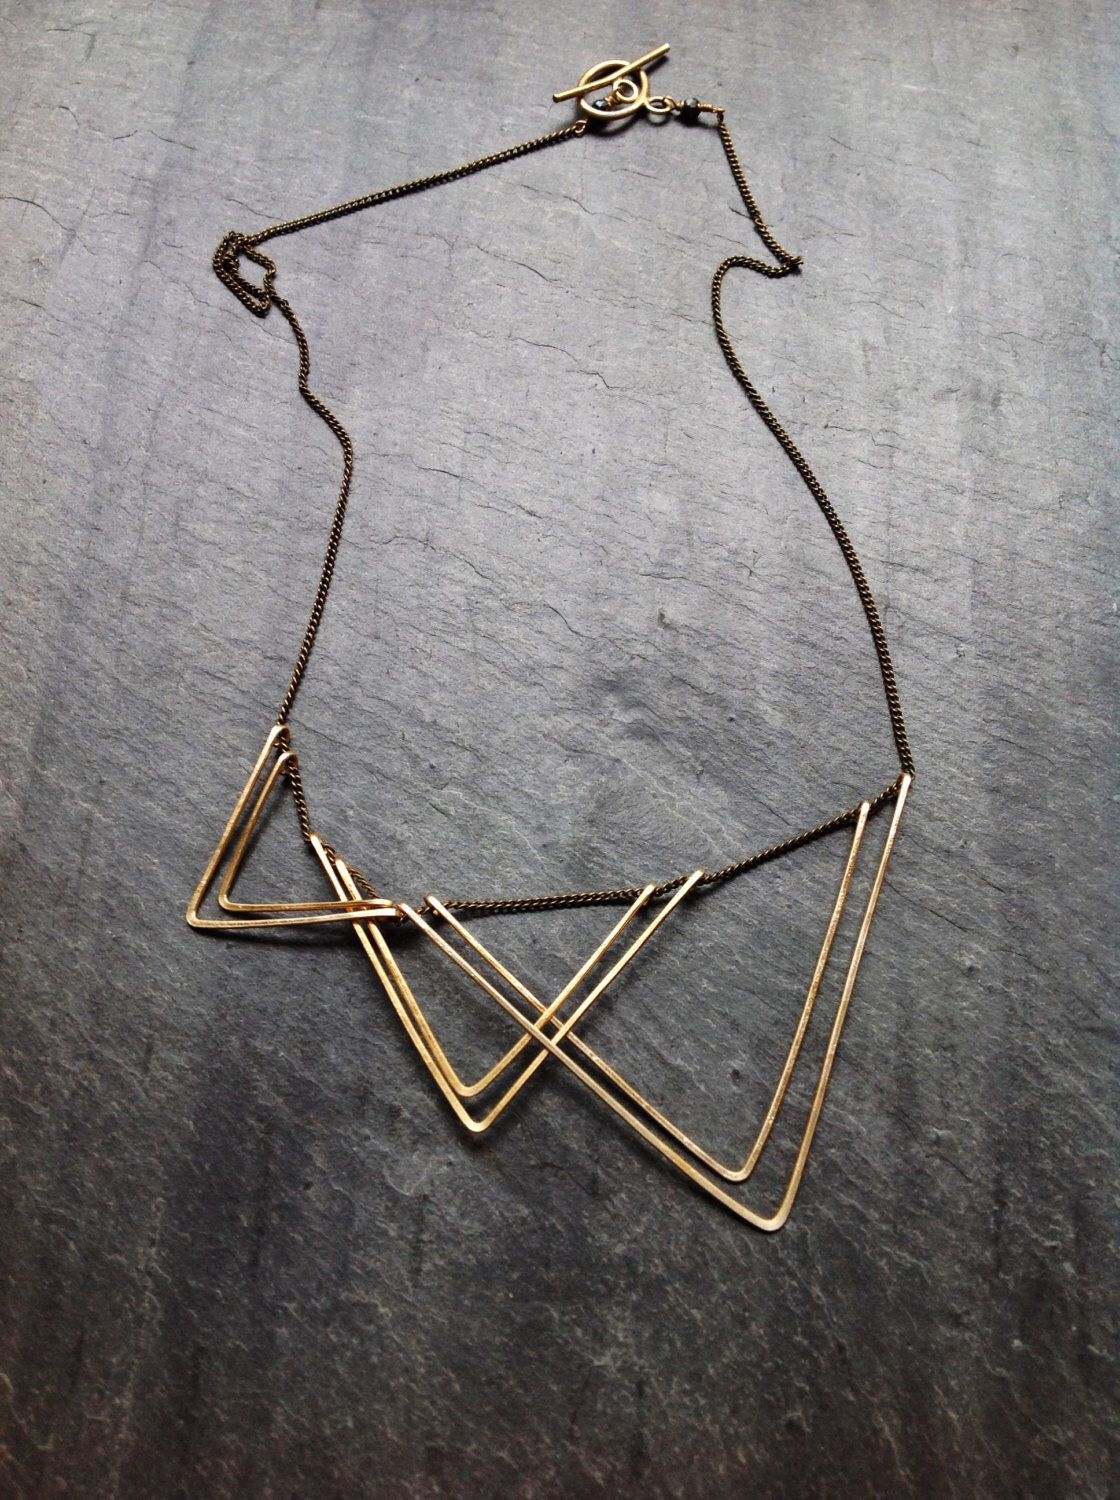 Gold Geometric Sails Necklace-By Loop Jewelry-14K Gold-fill Geometric-Sterling Silver Geometric-Portland Jewelry-Hammered Jewelry-Triangle by LoopHandmadeJewelry on Etsy https://www.etsy.com/listing/190046771/gold-geometric-sails-necklace-by-loop